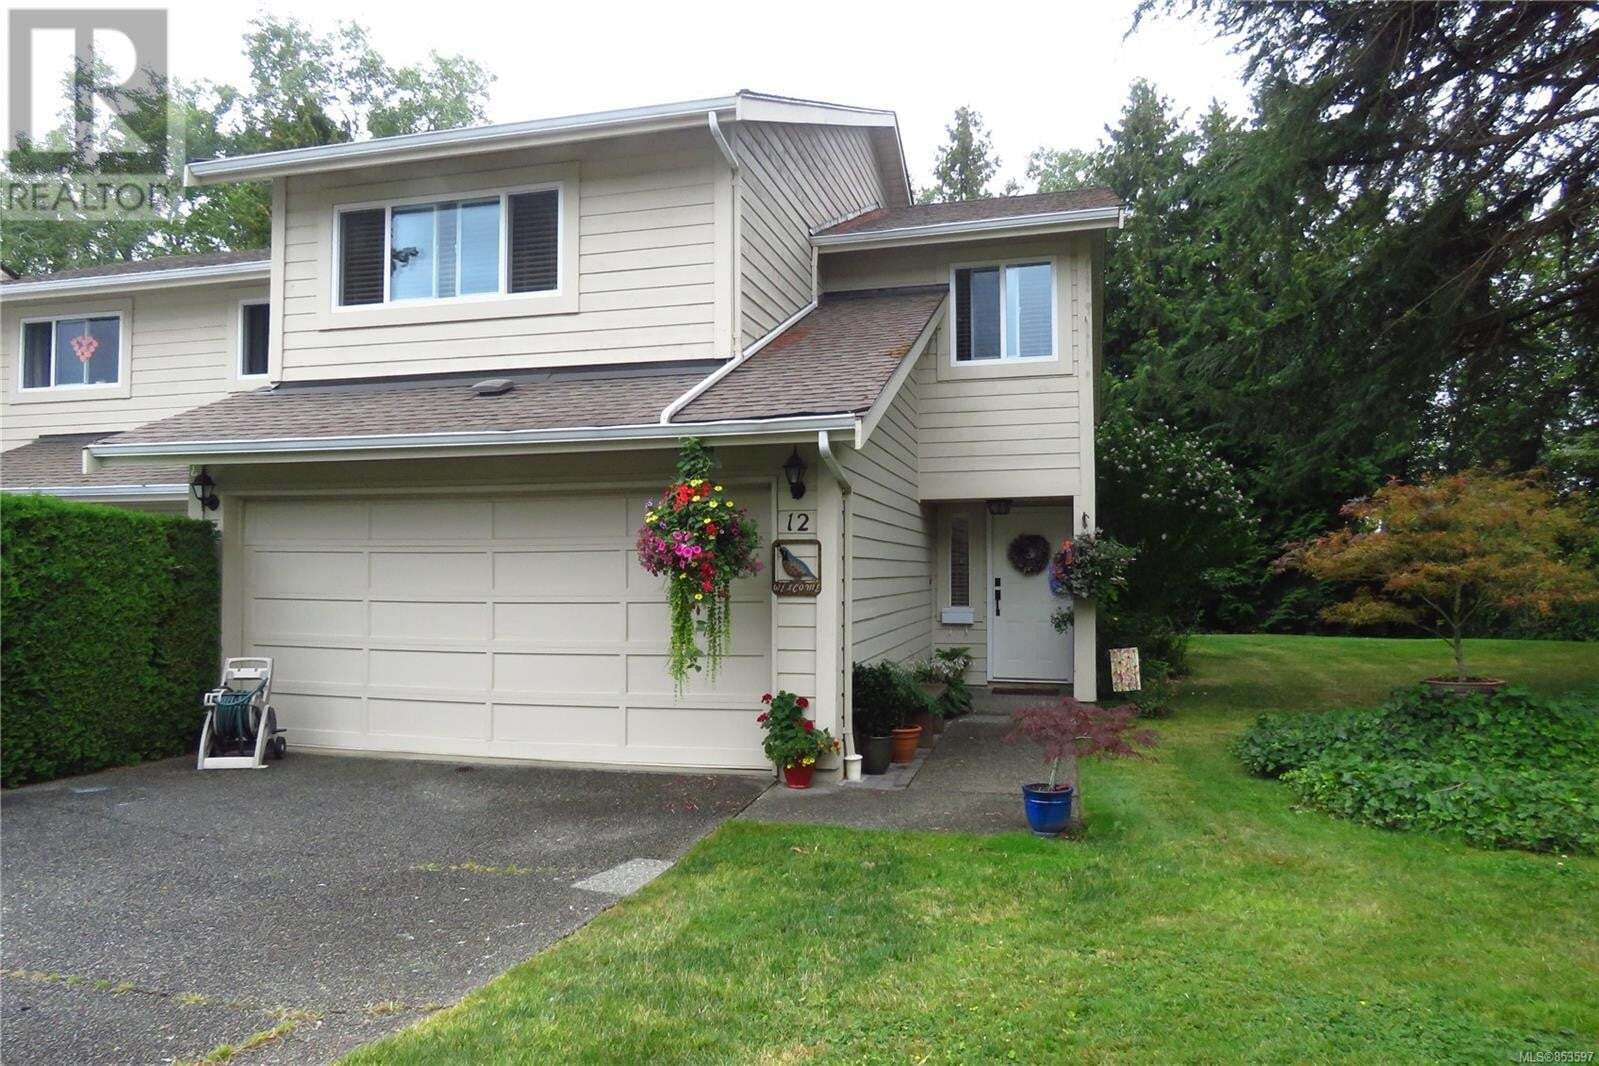 Townhouse for sale at 1287 Verdier Ave Unit 12 Central Saanich British Columbia - MLS: 853597